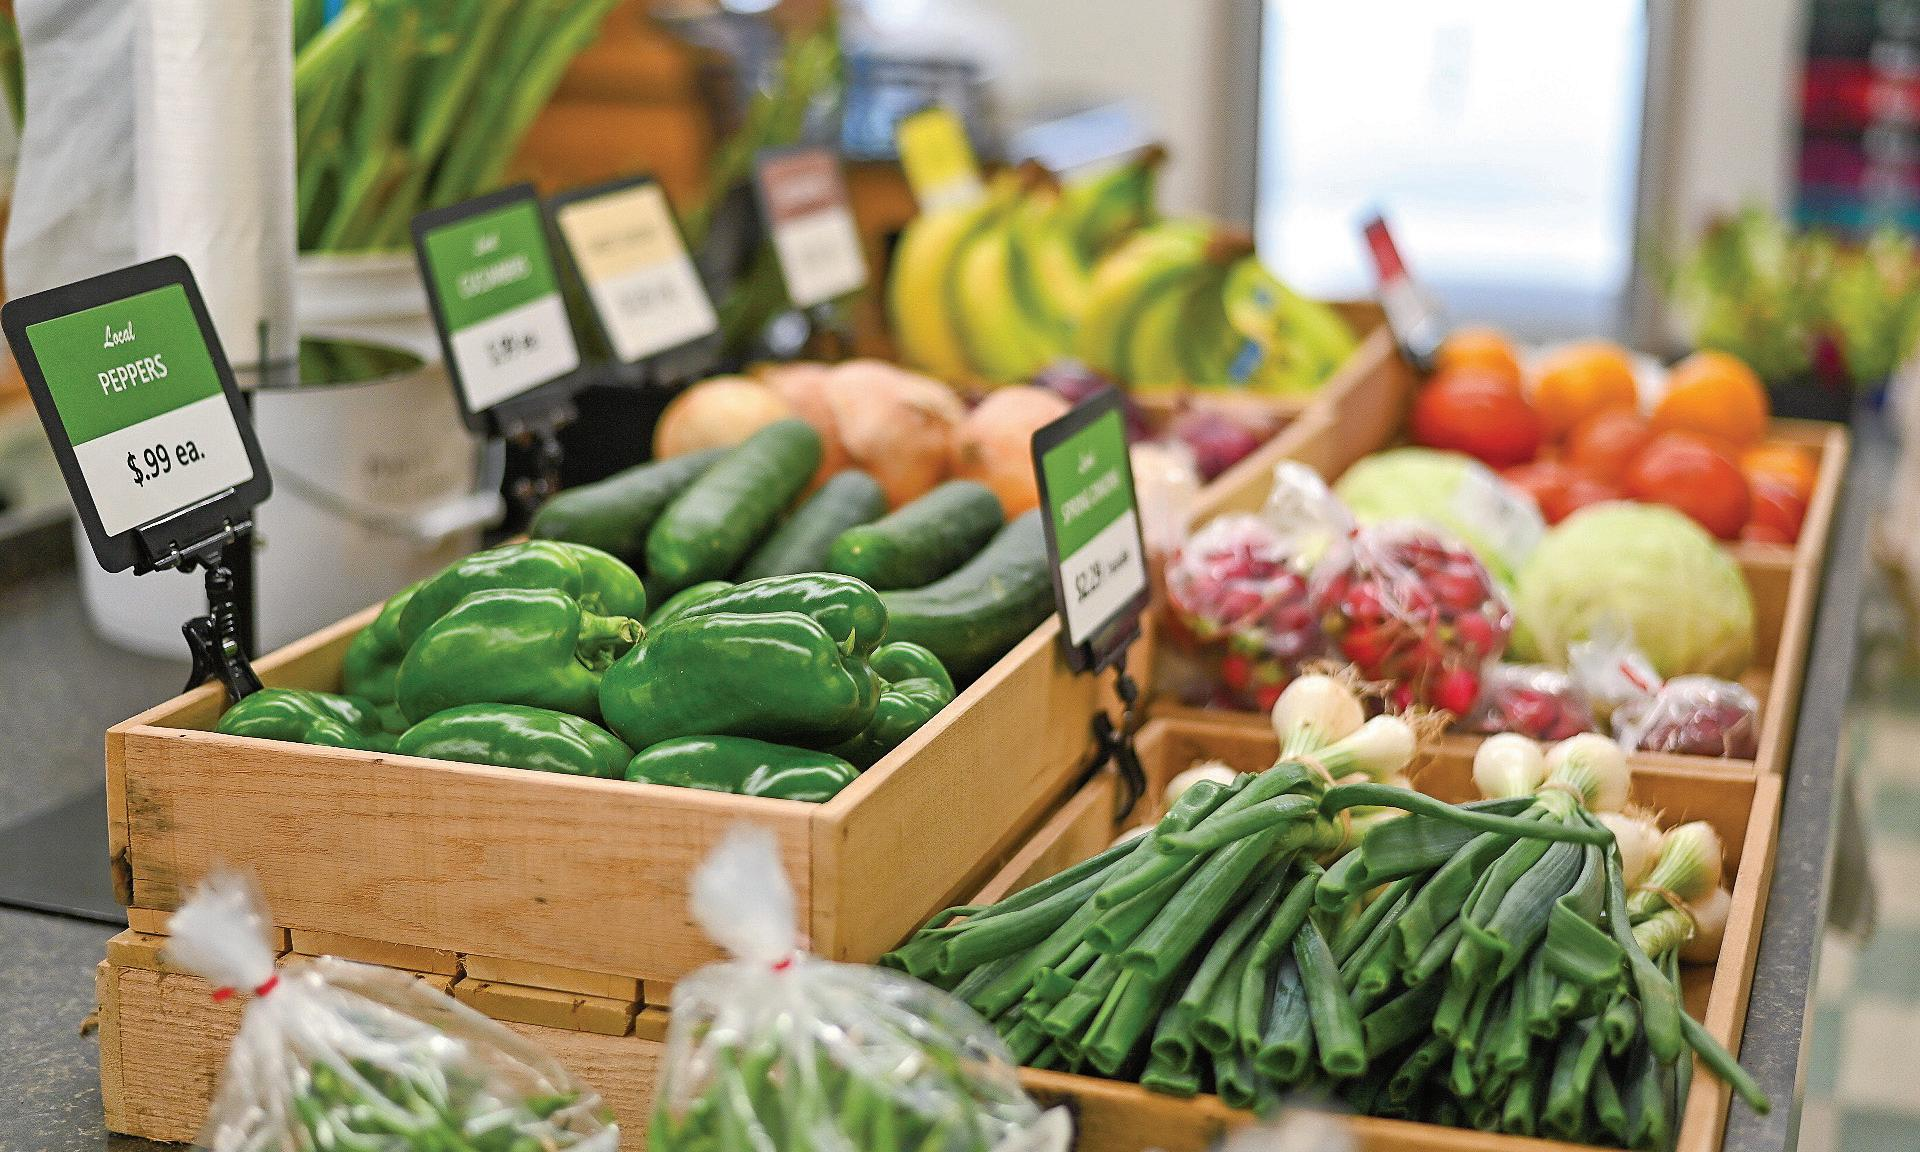 Page 12 of Finding fresh fruits, vegetables from area growers